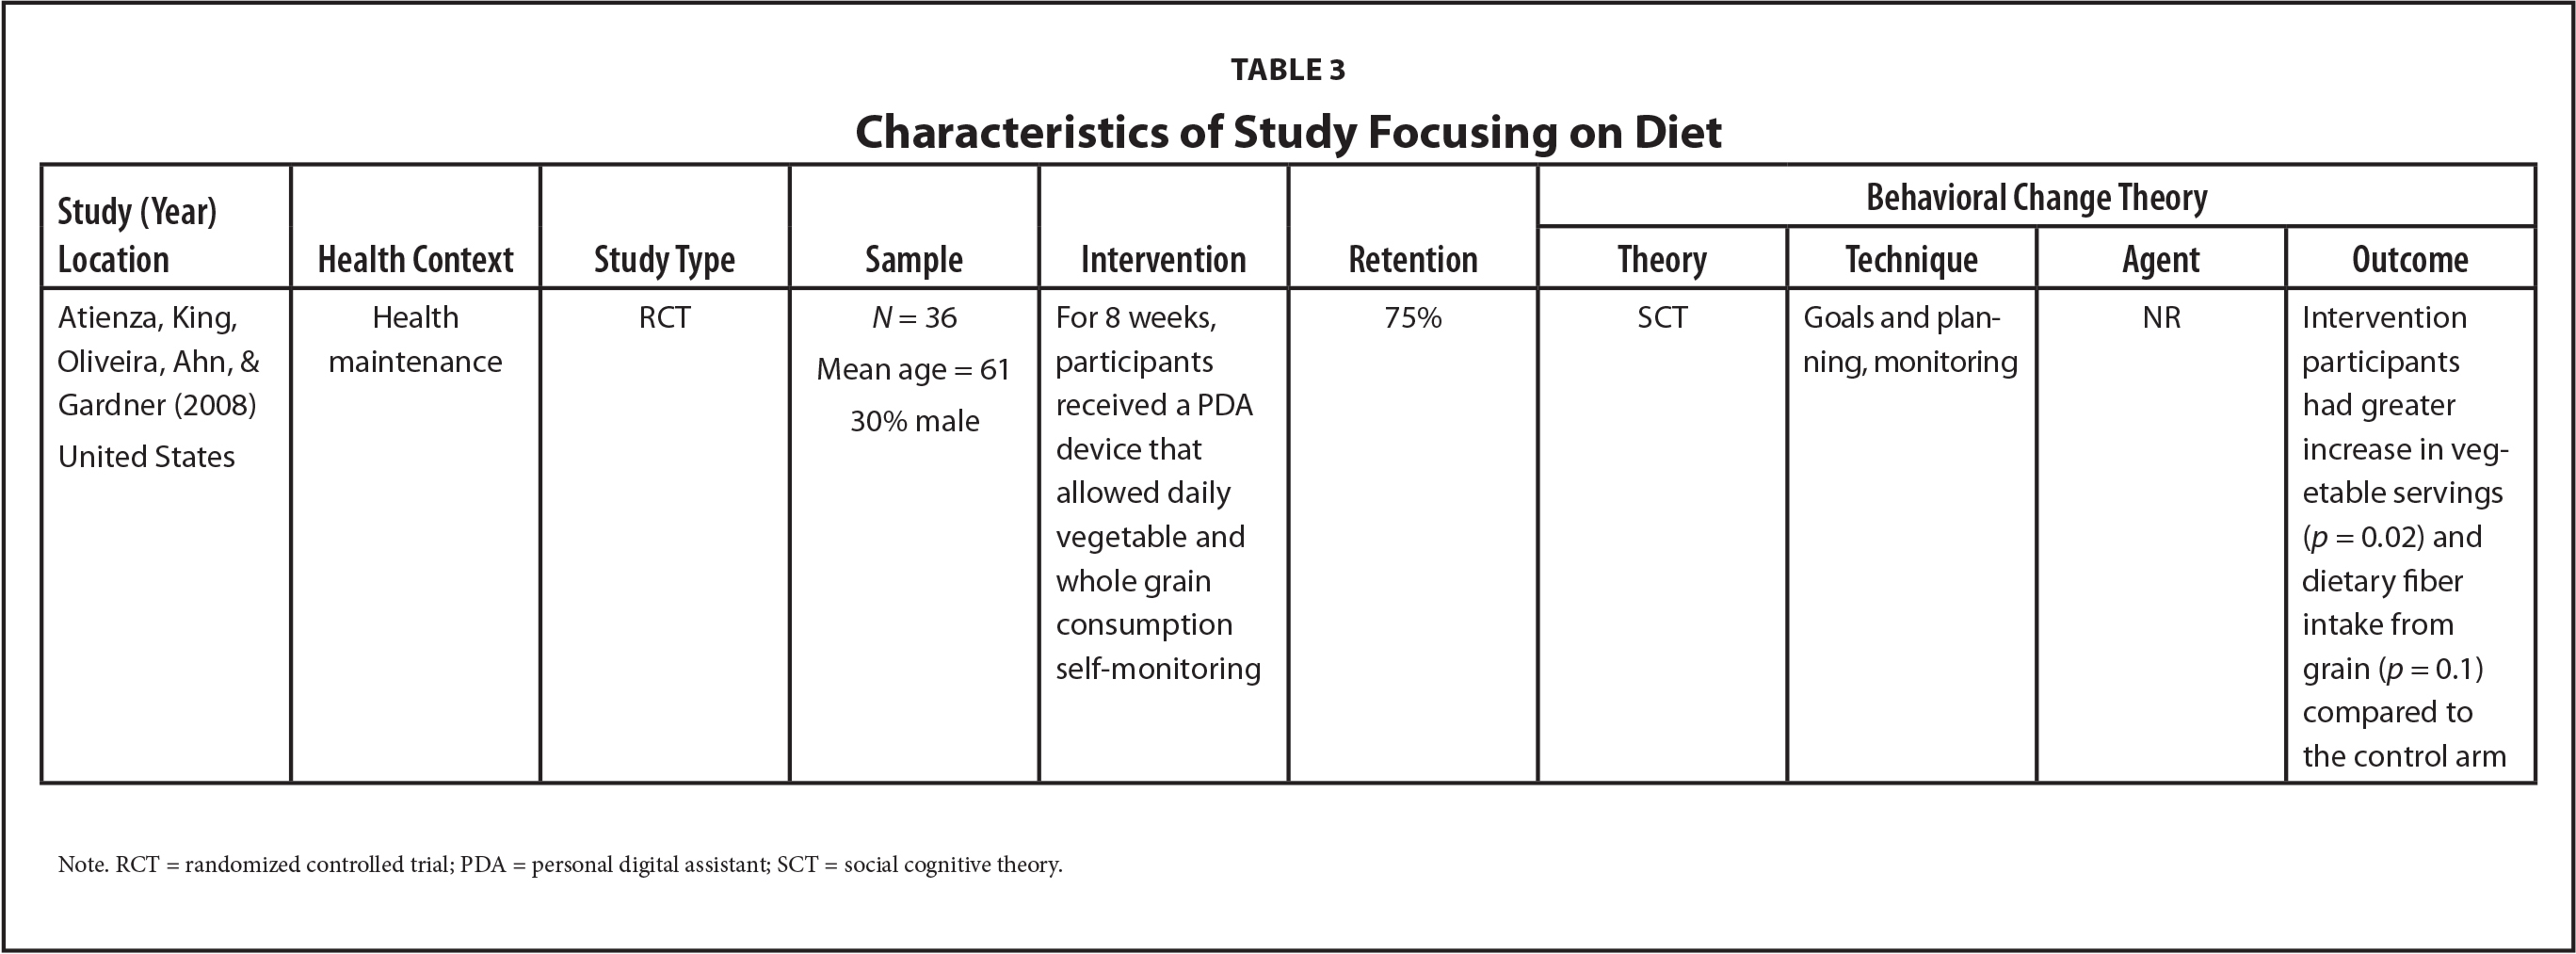 Characteristics of Study Focusing on Diet